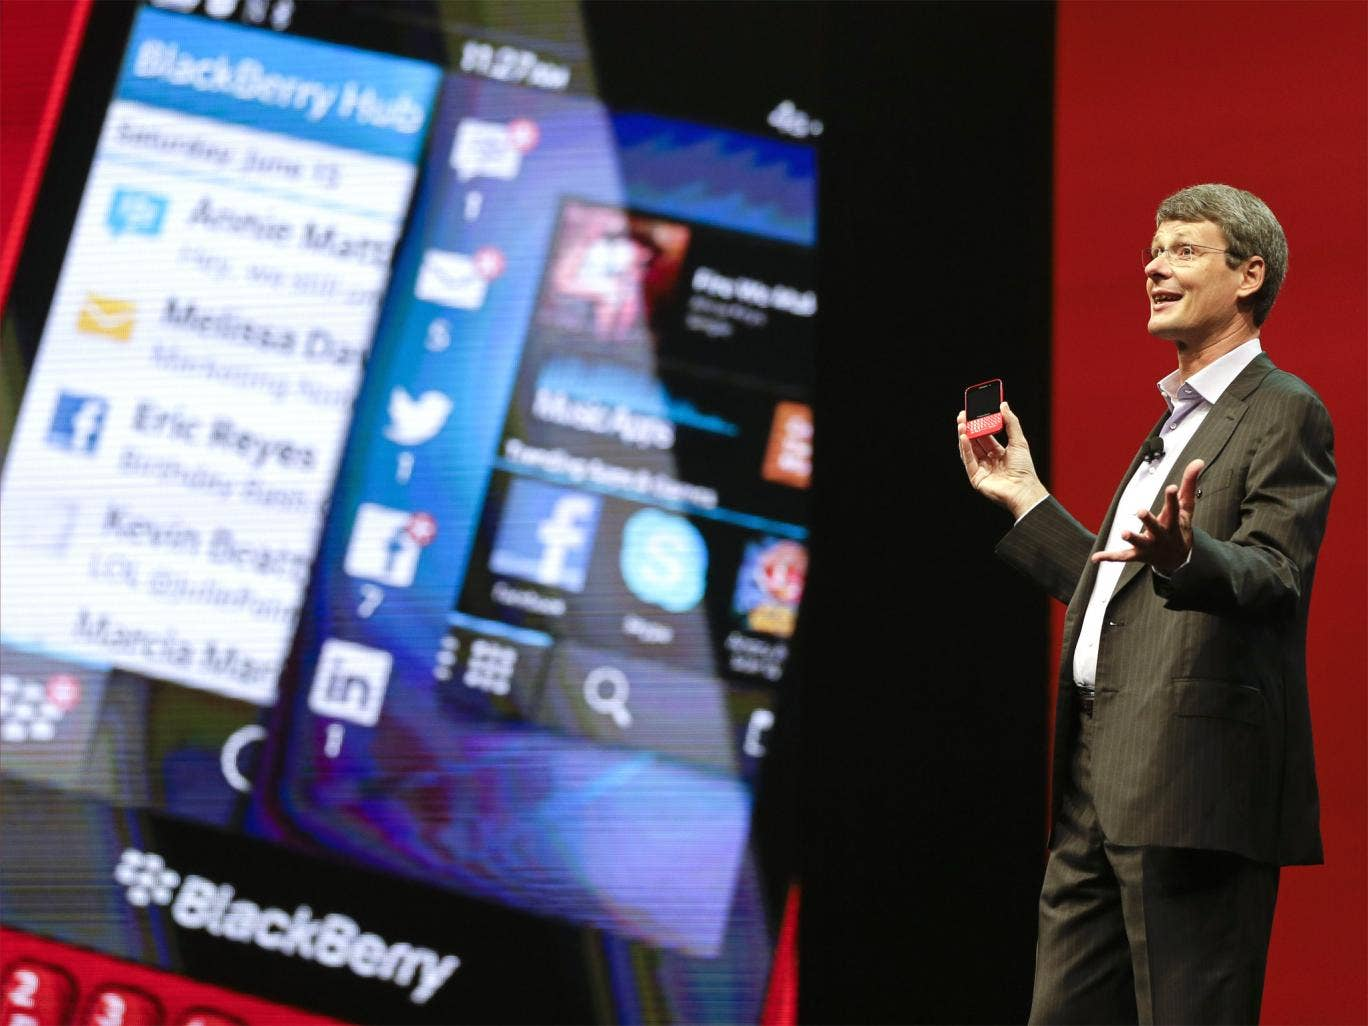 BlackBerry CEO Thorsten Heins holds up the new BlackBerry 10 at a conference in Florida on Tuesday